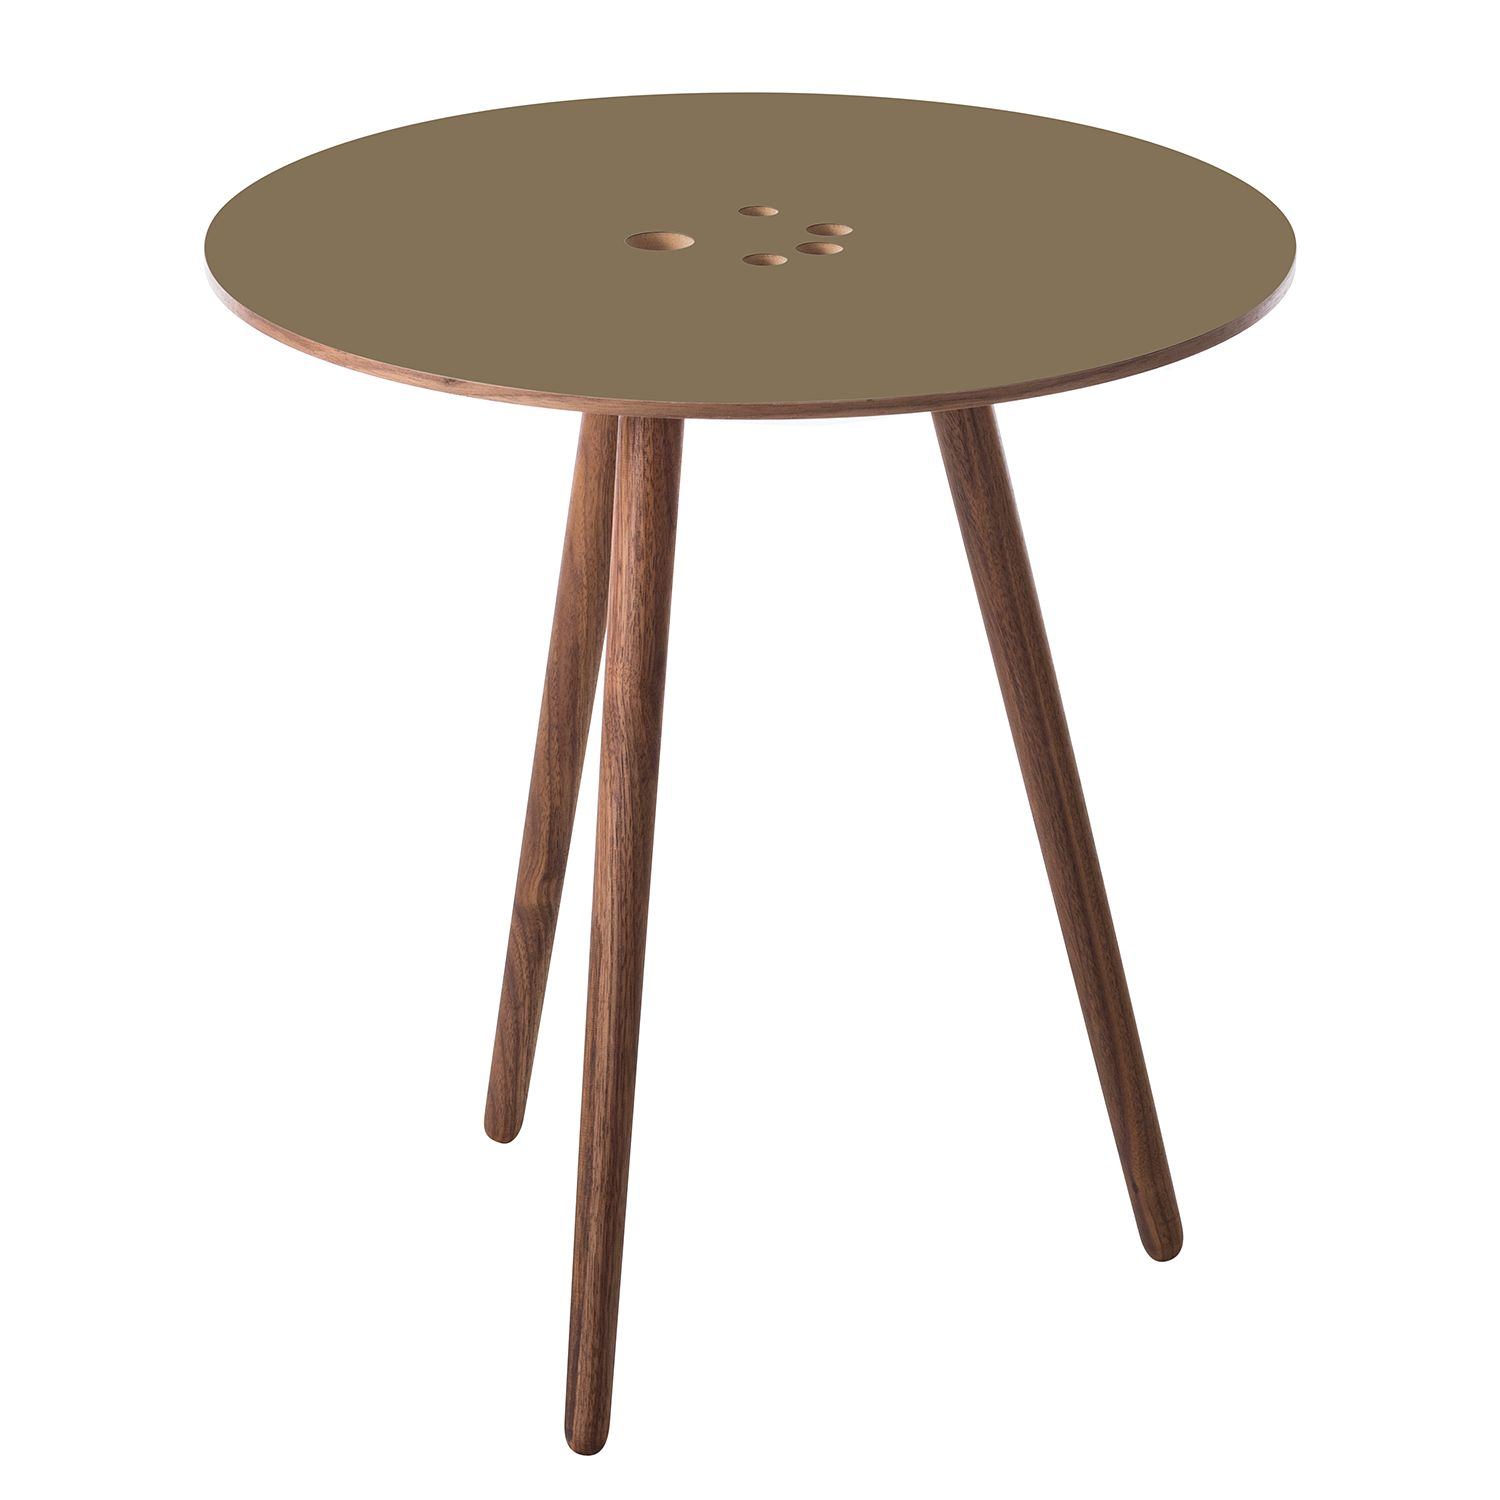 Table d'appoint Eldena I - Taupe / Noyer, Studio Copenhagen